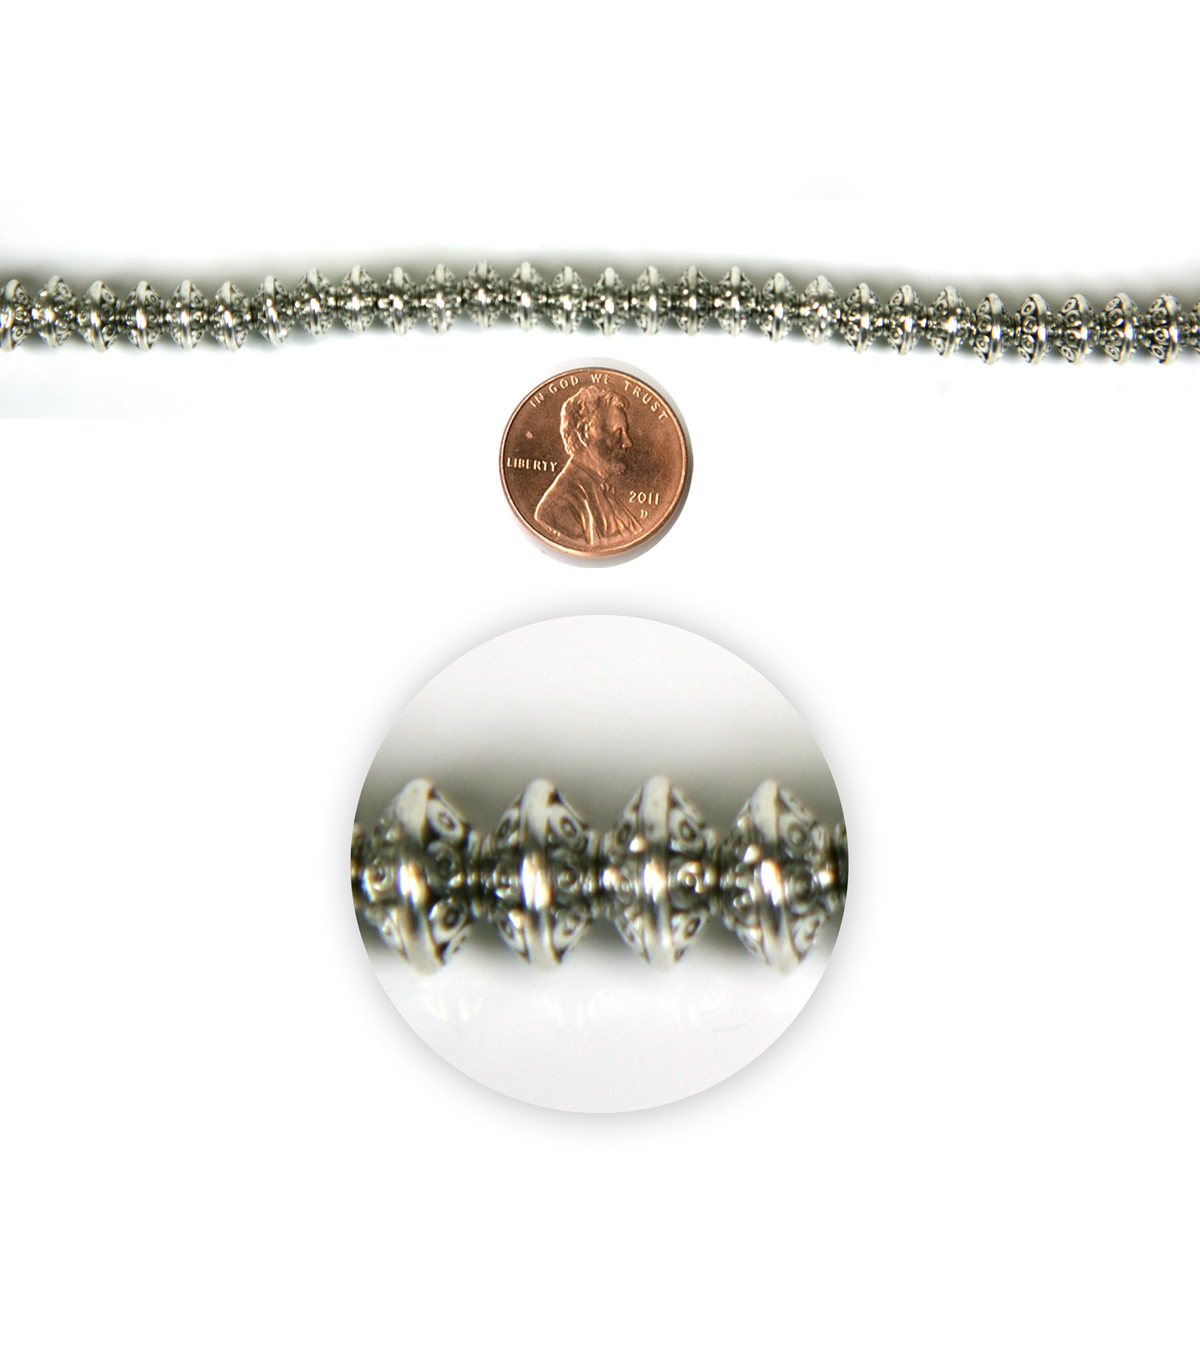 Blue Moon Strung Metal Spacer Beads,Rondelle,Antique Silver,Dots